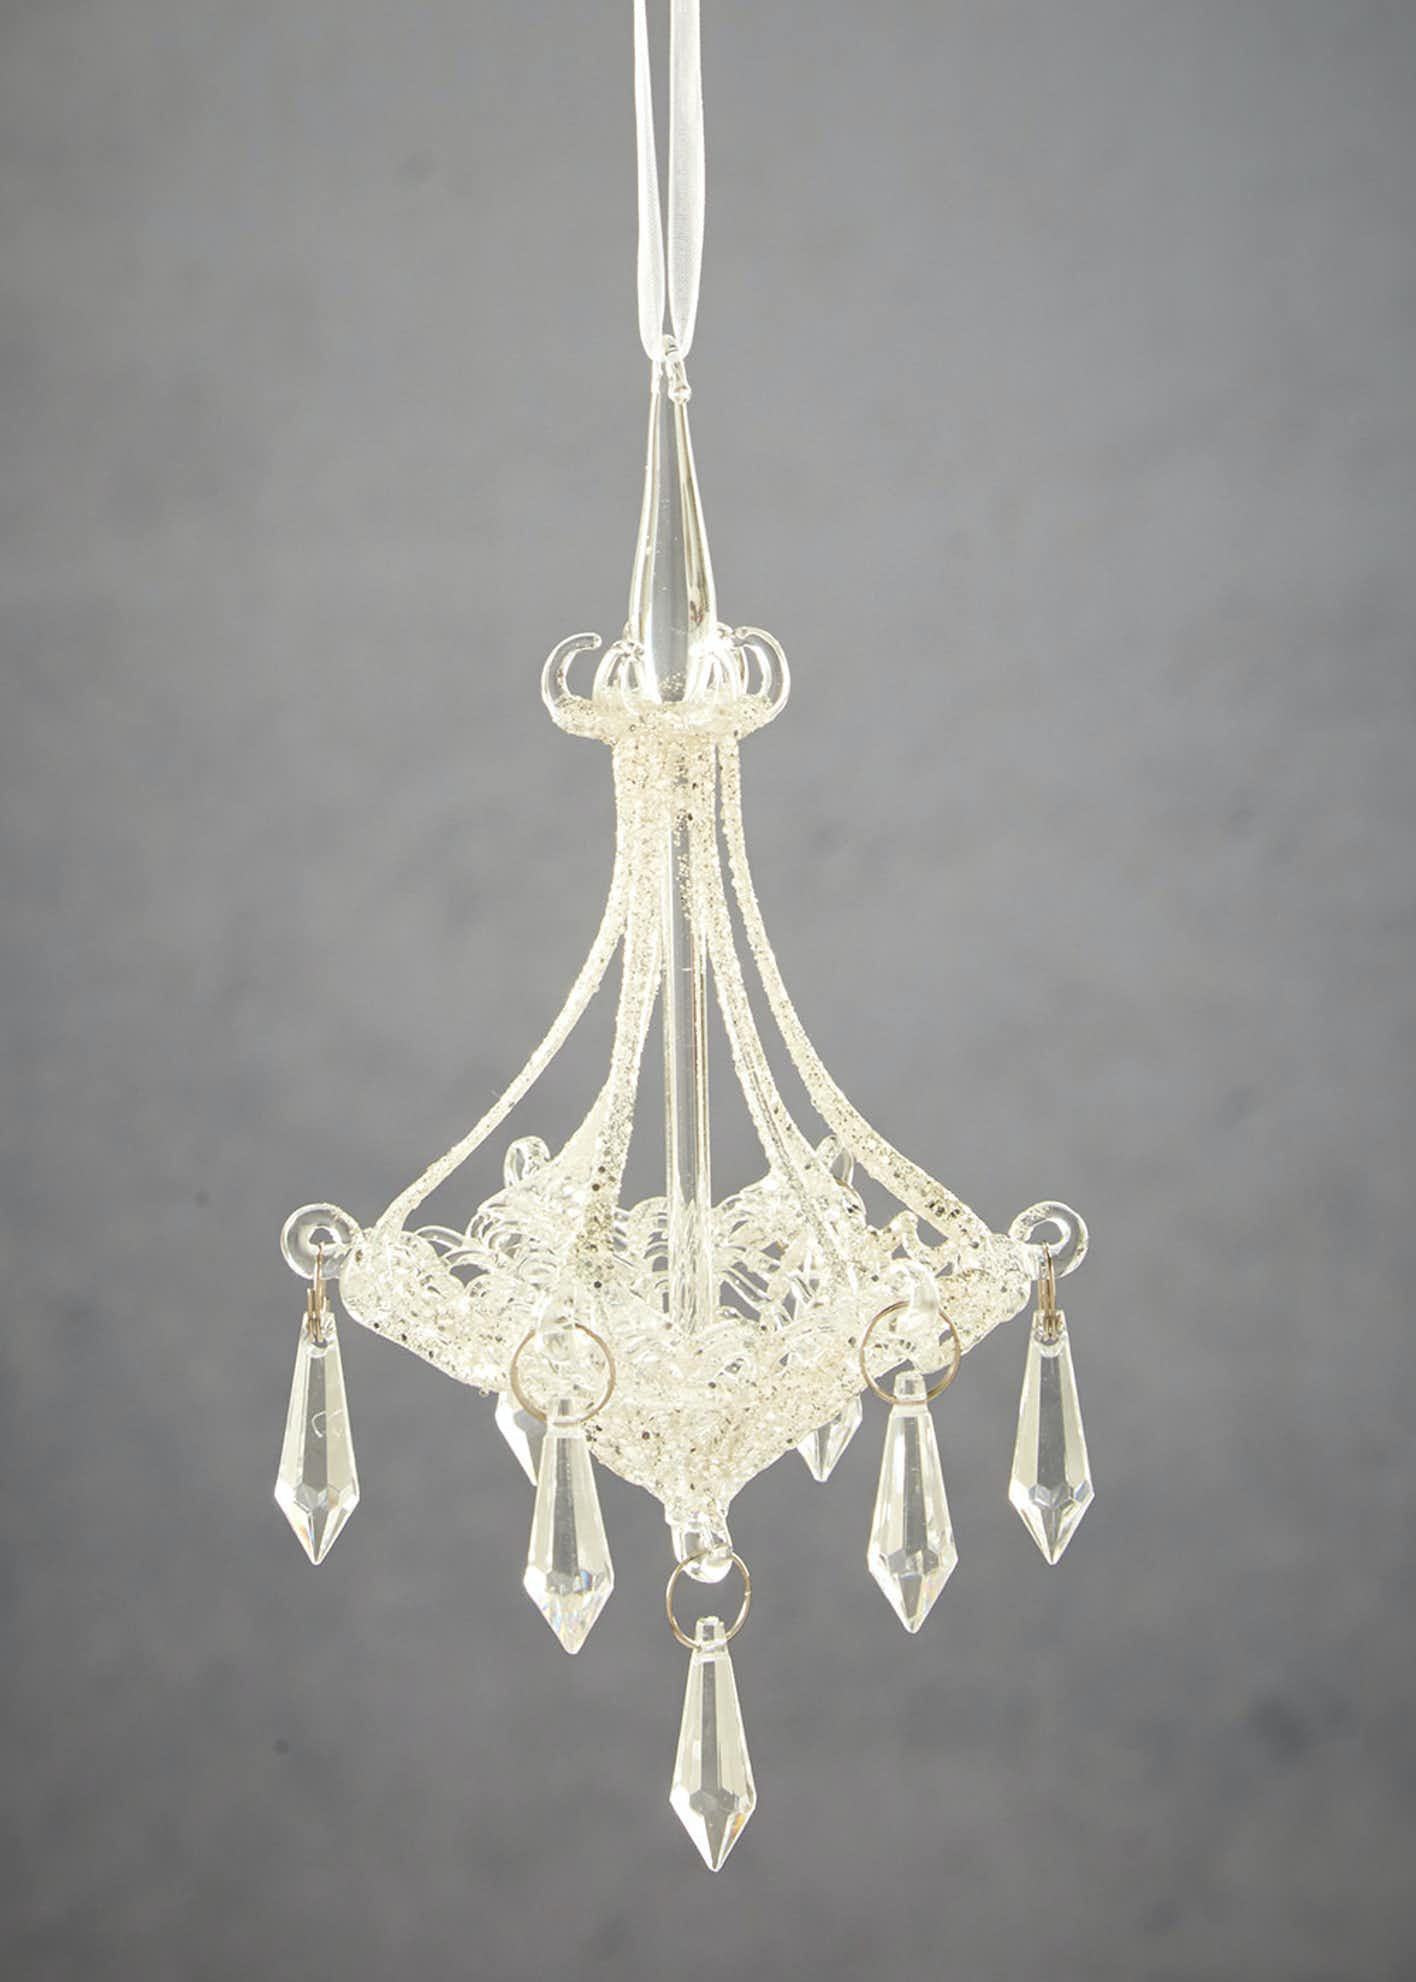 Chandelier Christmas Tree Decoration (15cm x 10cm)